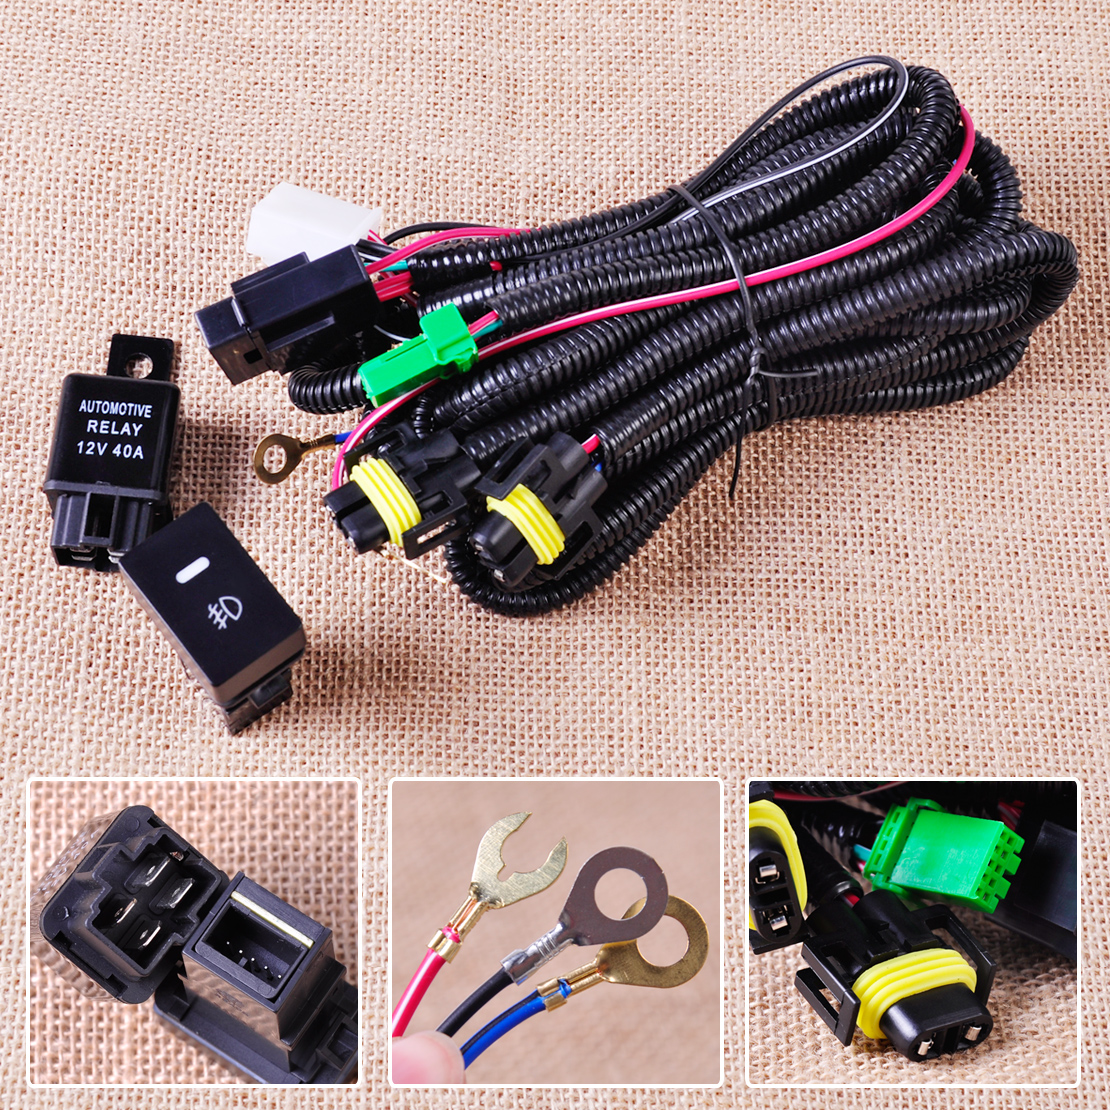 NEW Wiring Harness Socket+ Switch for H11 Fog Light Lamp Ford Focus Acura  Nissan 728360607010 | eBay